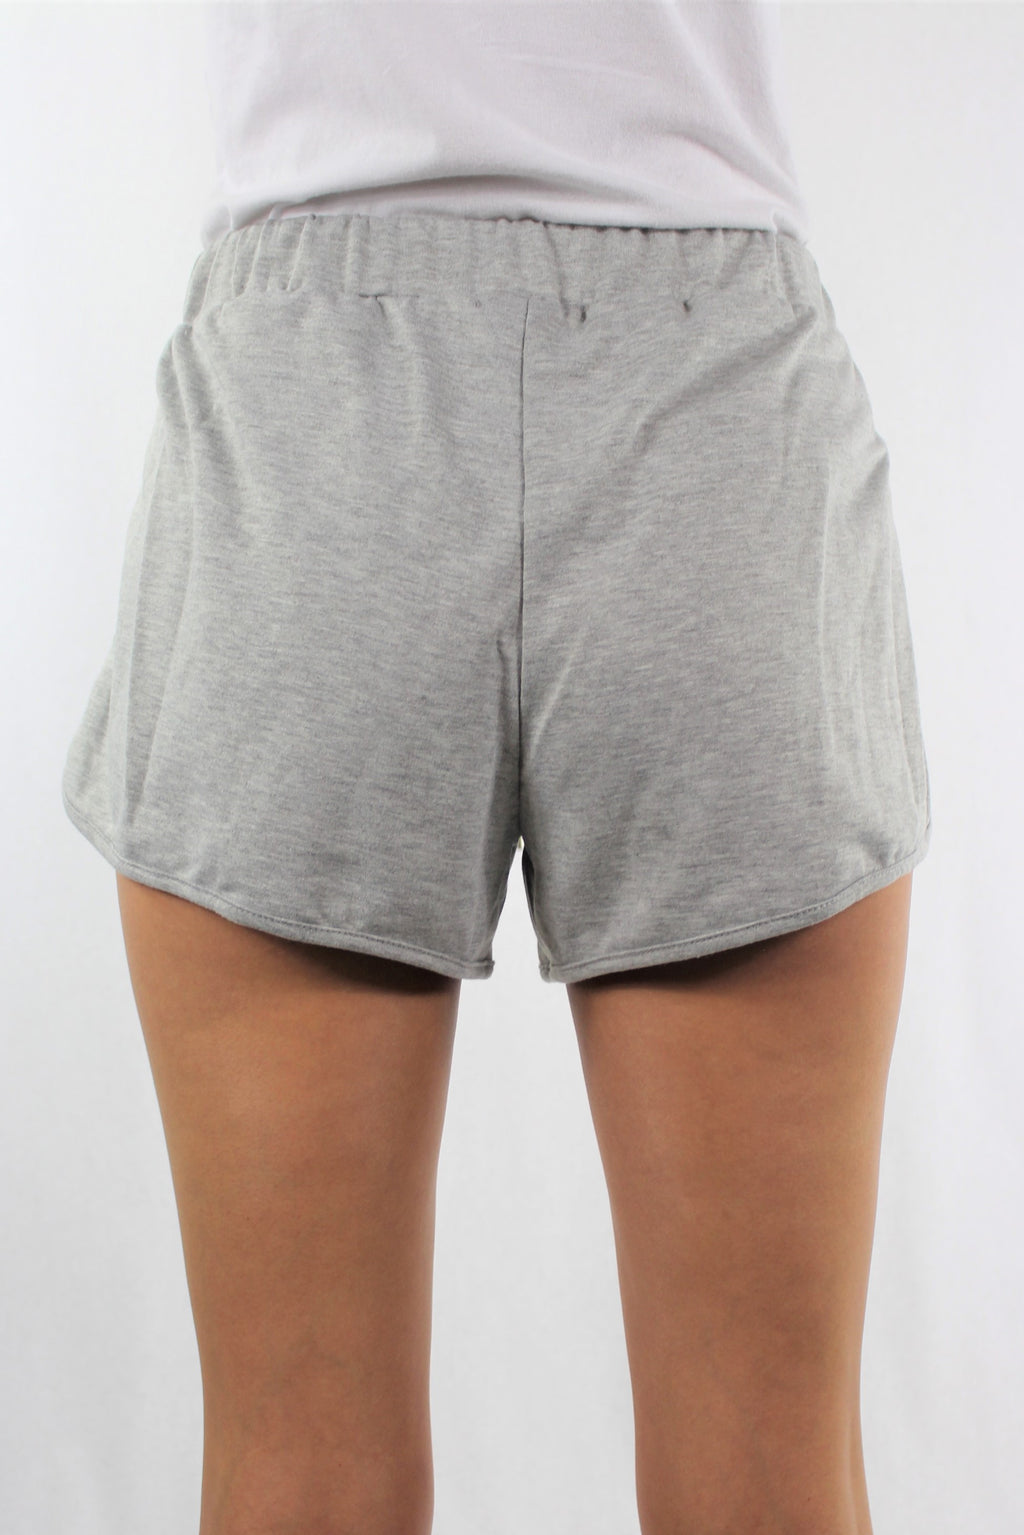 Women's Drawstring Waist Shorts